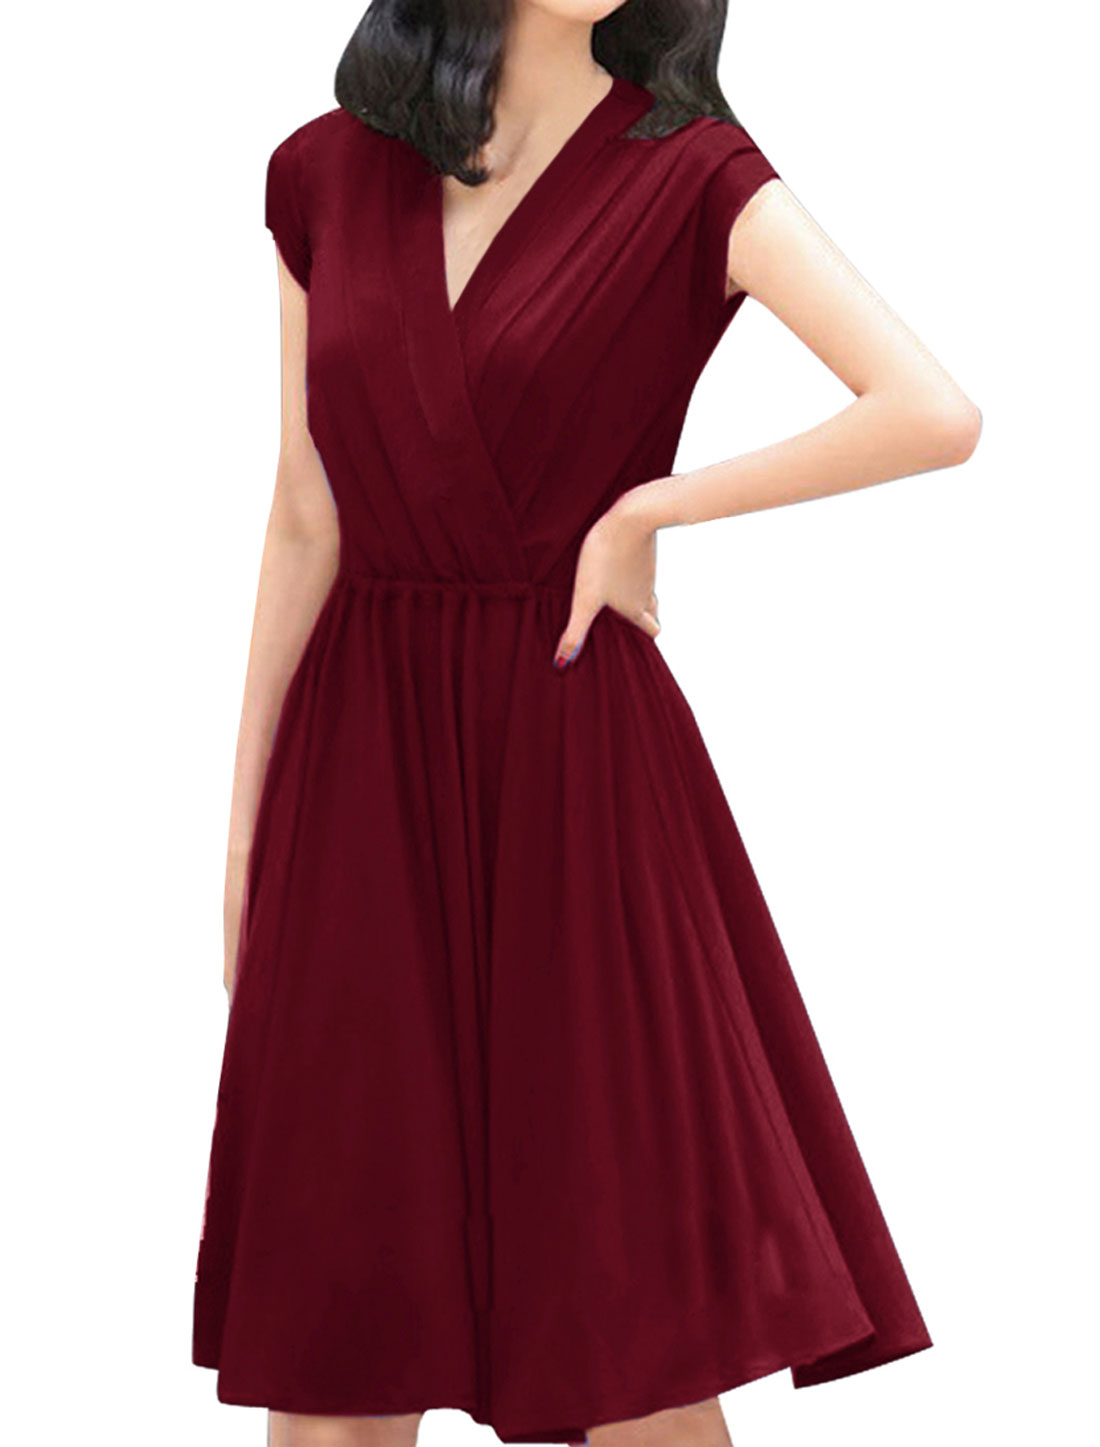 Newly Crossover V Neck Sleeveless Burgundy Dress for Lady XL